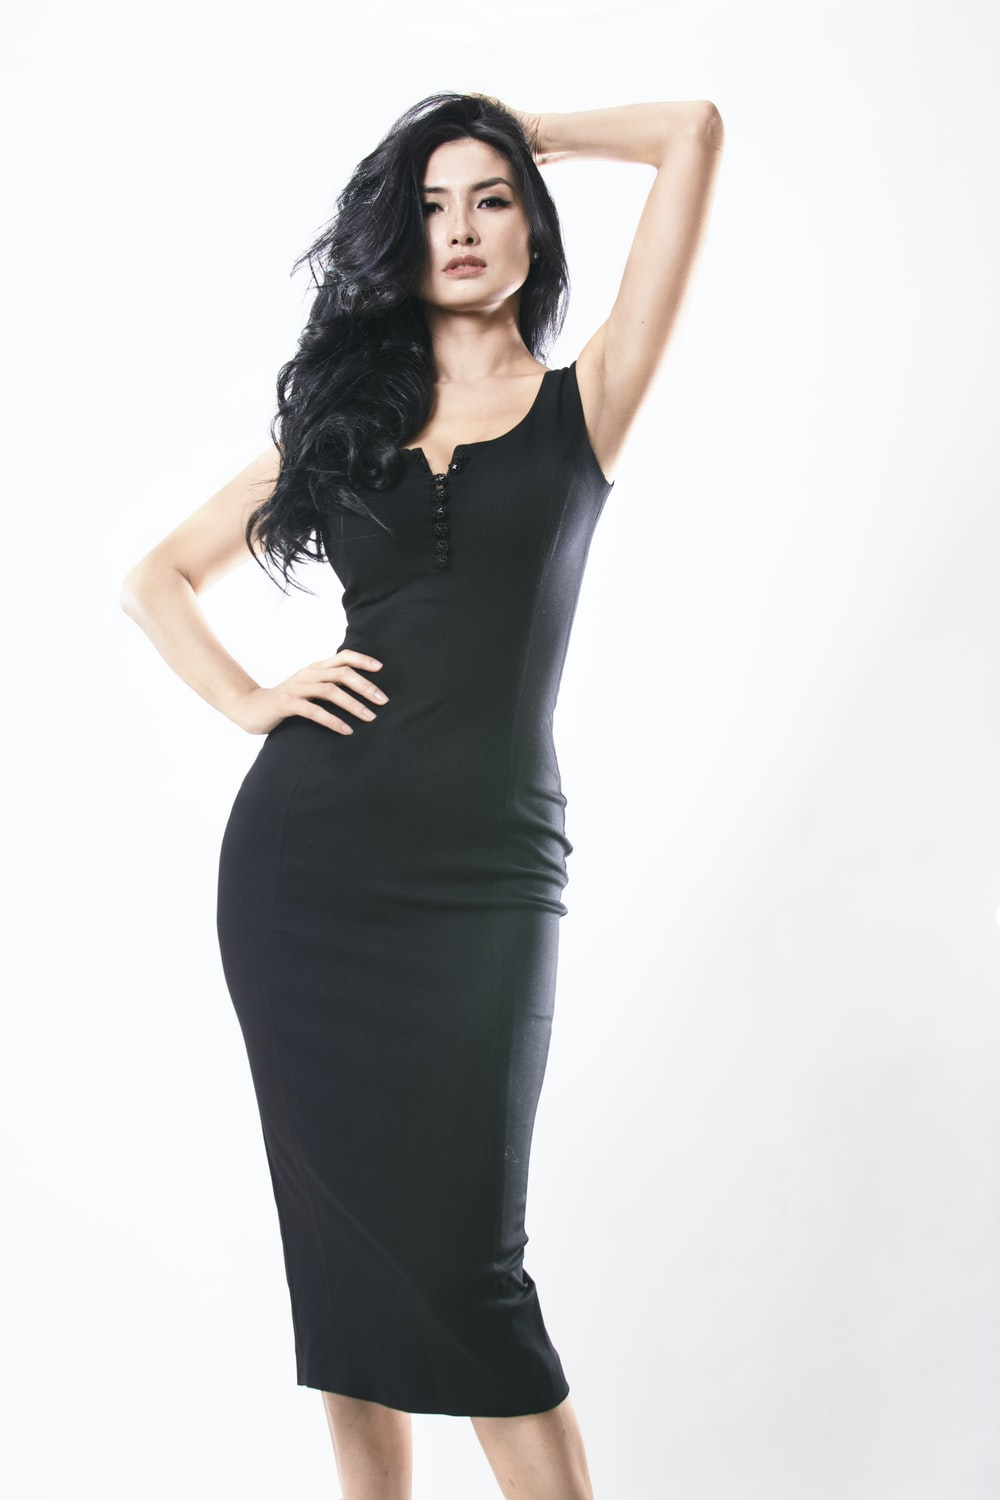 woman wearing black sleeveless dress holding hair with left hand